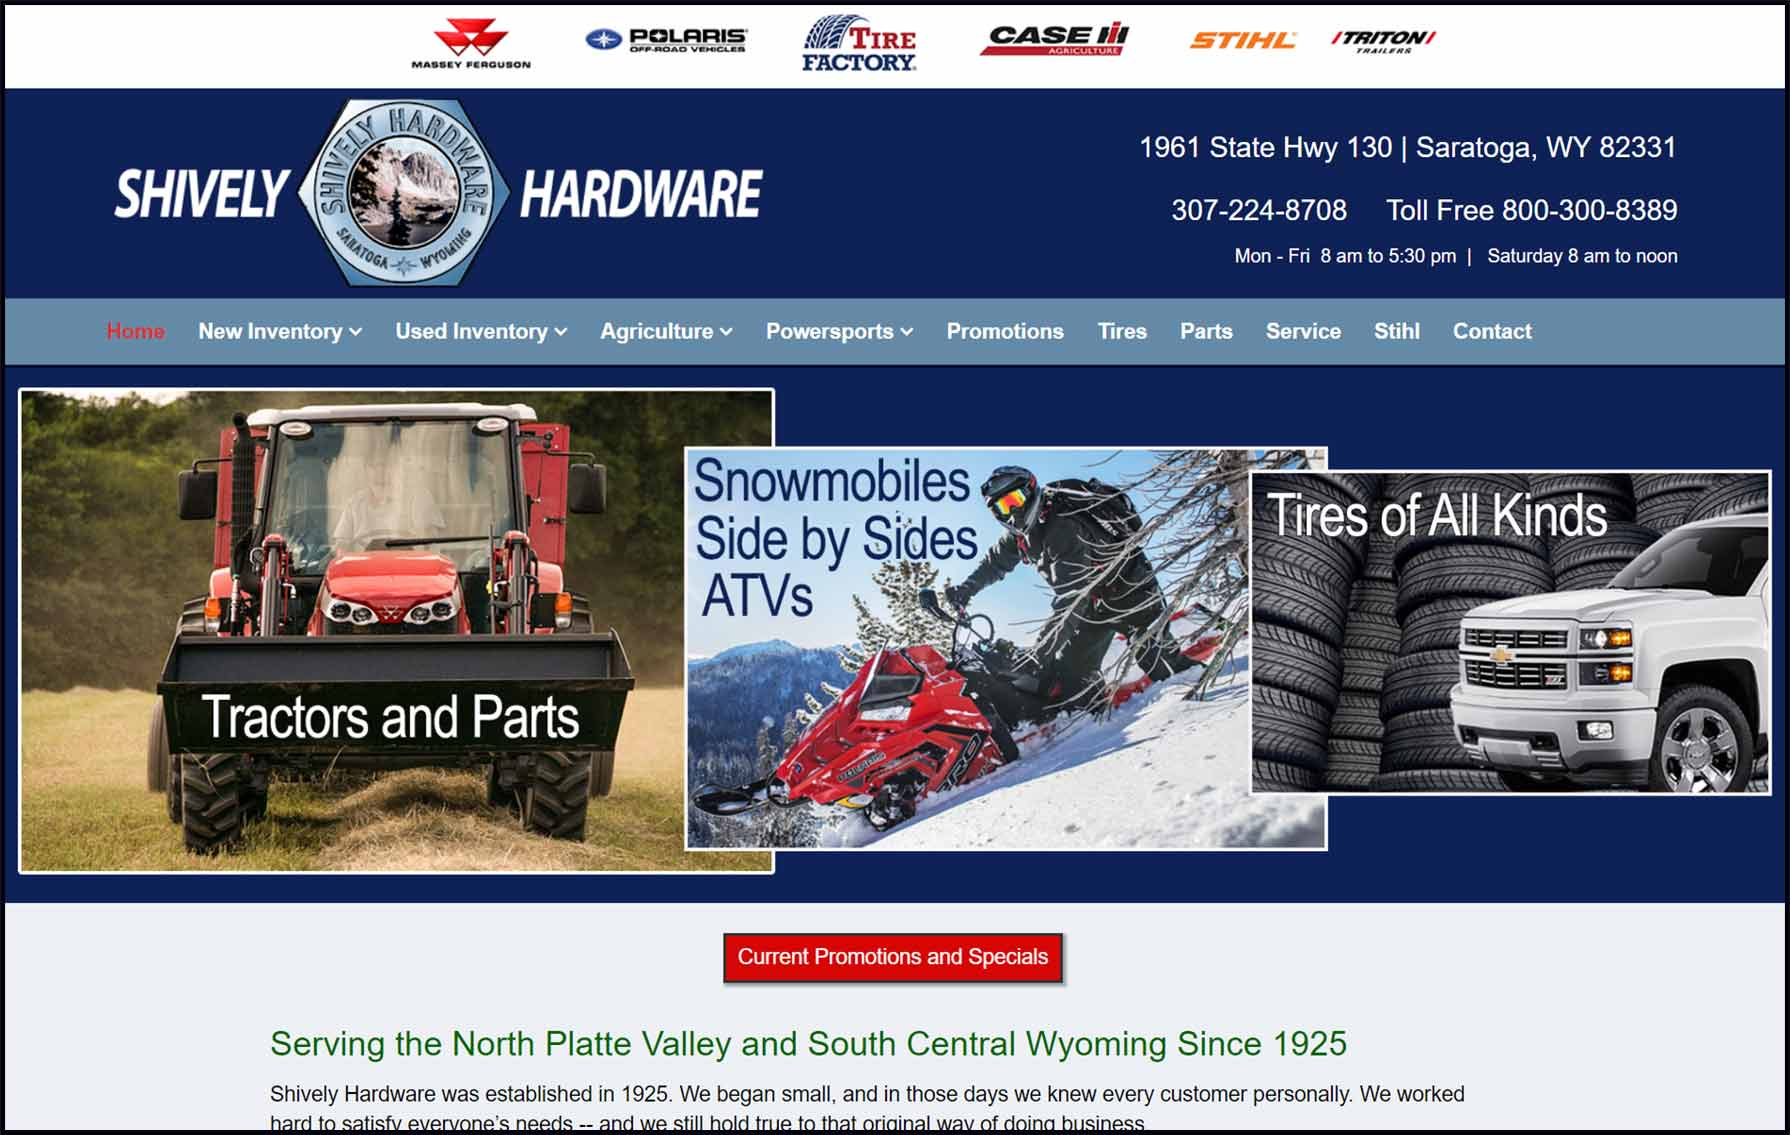 shively hardware homepage image